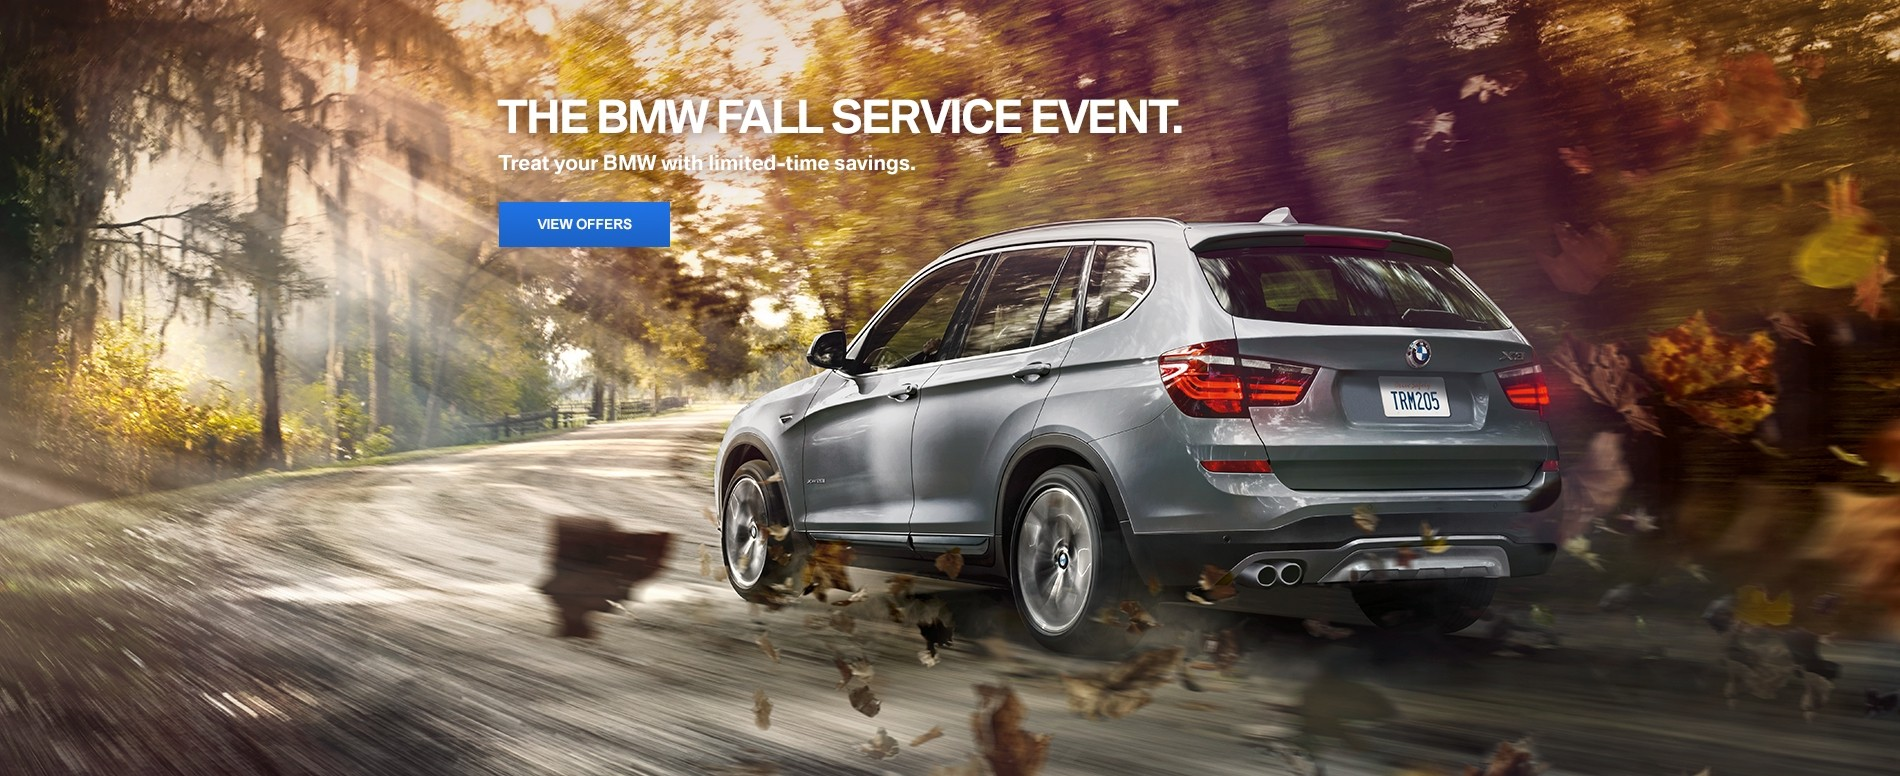 Required- BMW Fall Service 8.21-10.31